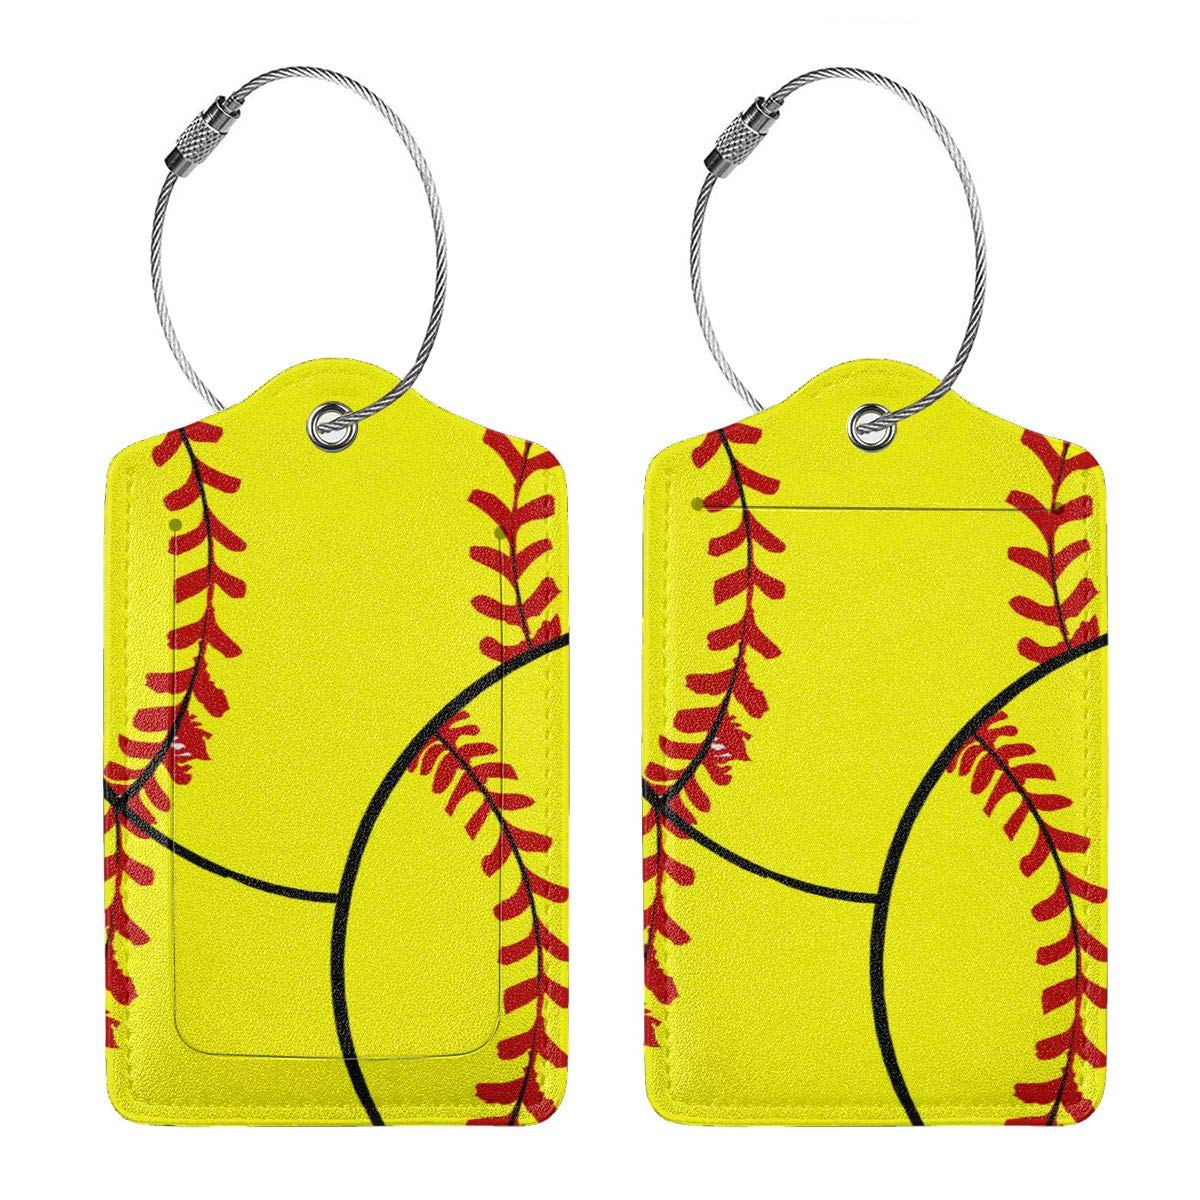 Softball Travel Luggage Tags With Full Privacy Cover Leather Case And Stainless Steel Loop